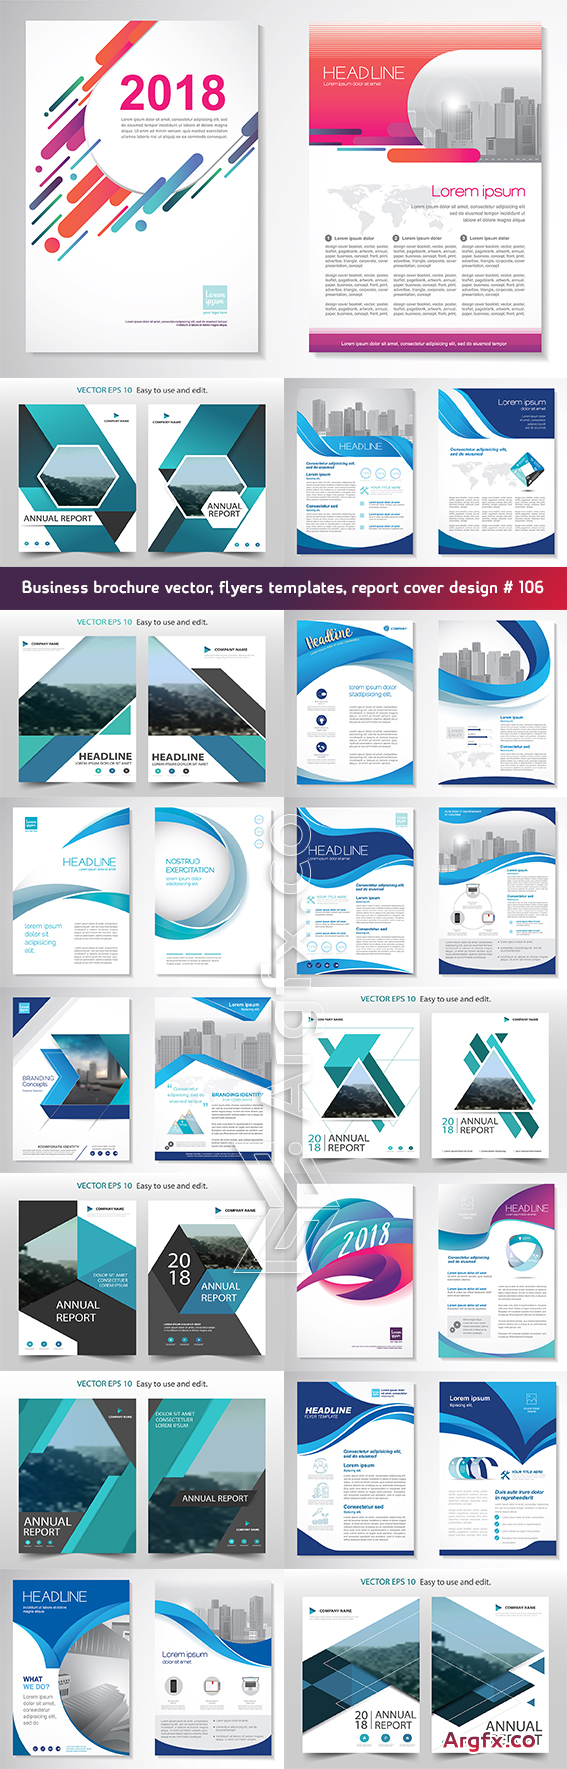 Business brochure vector, flyers templates, report cover design # 106